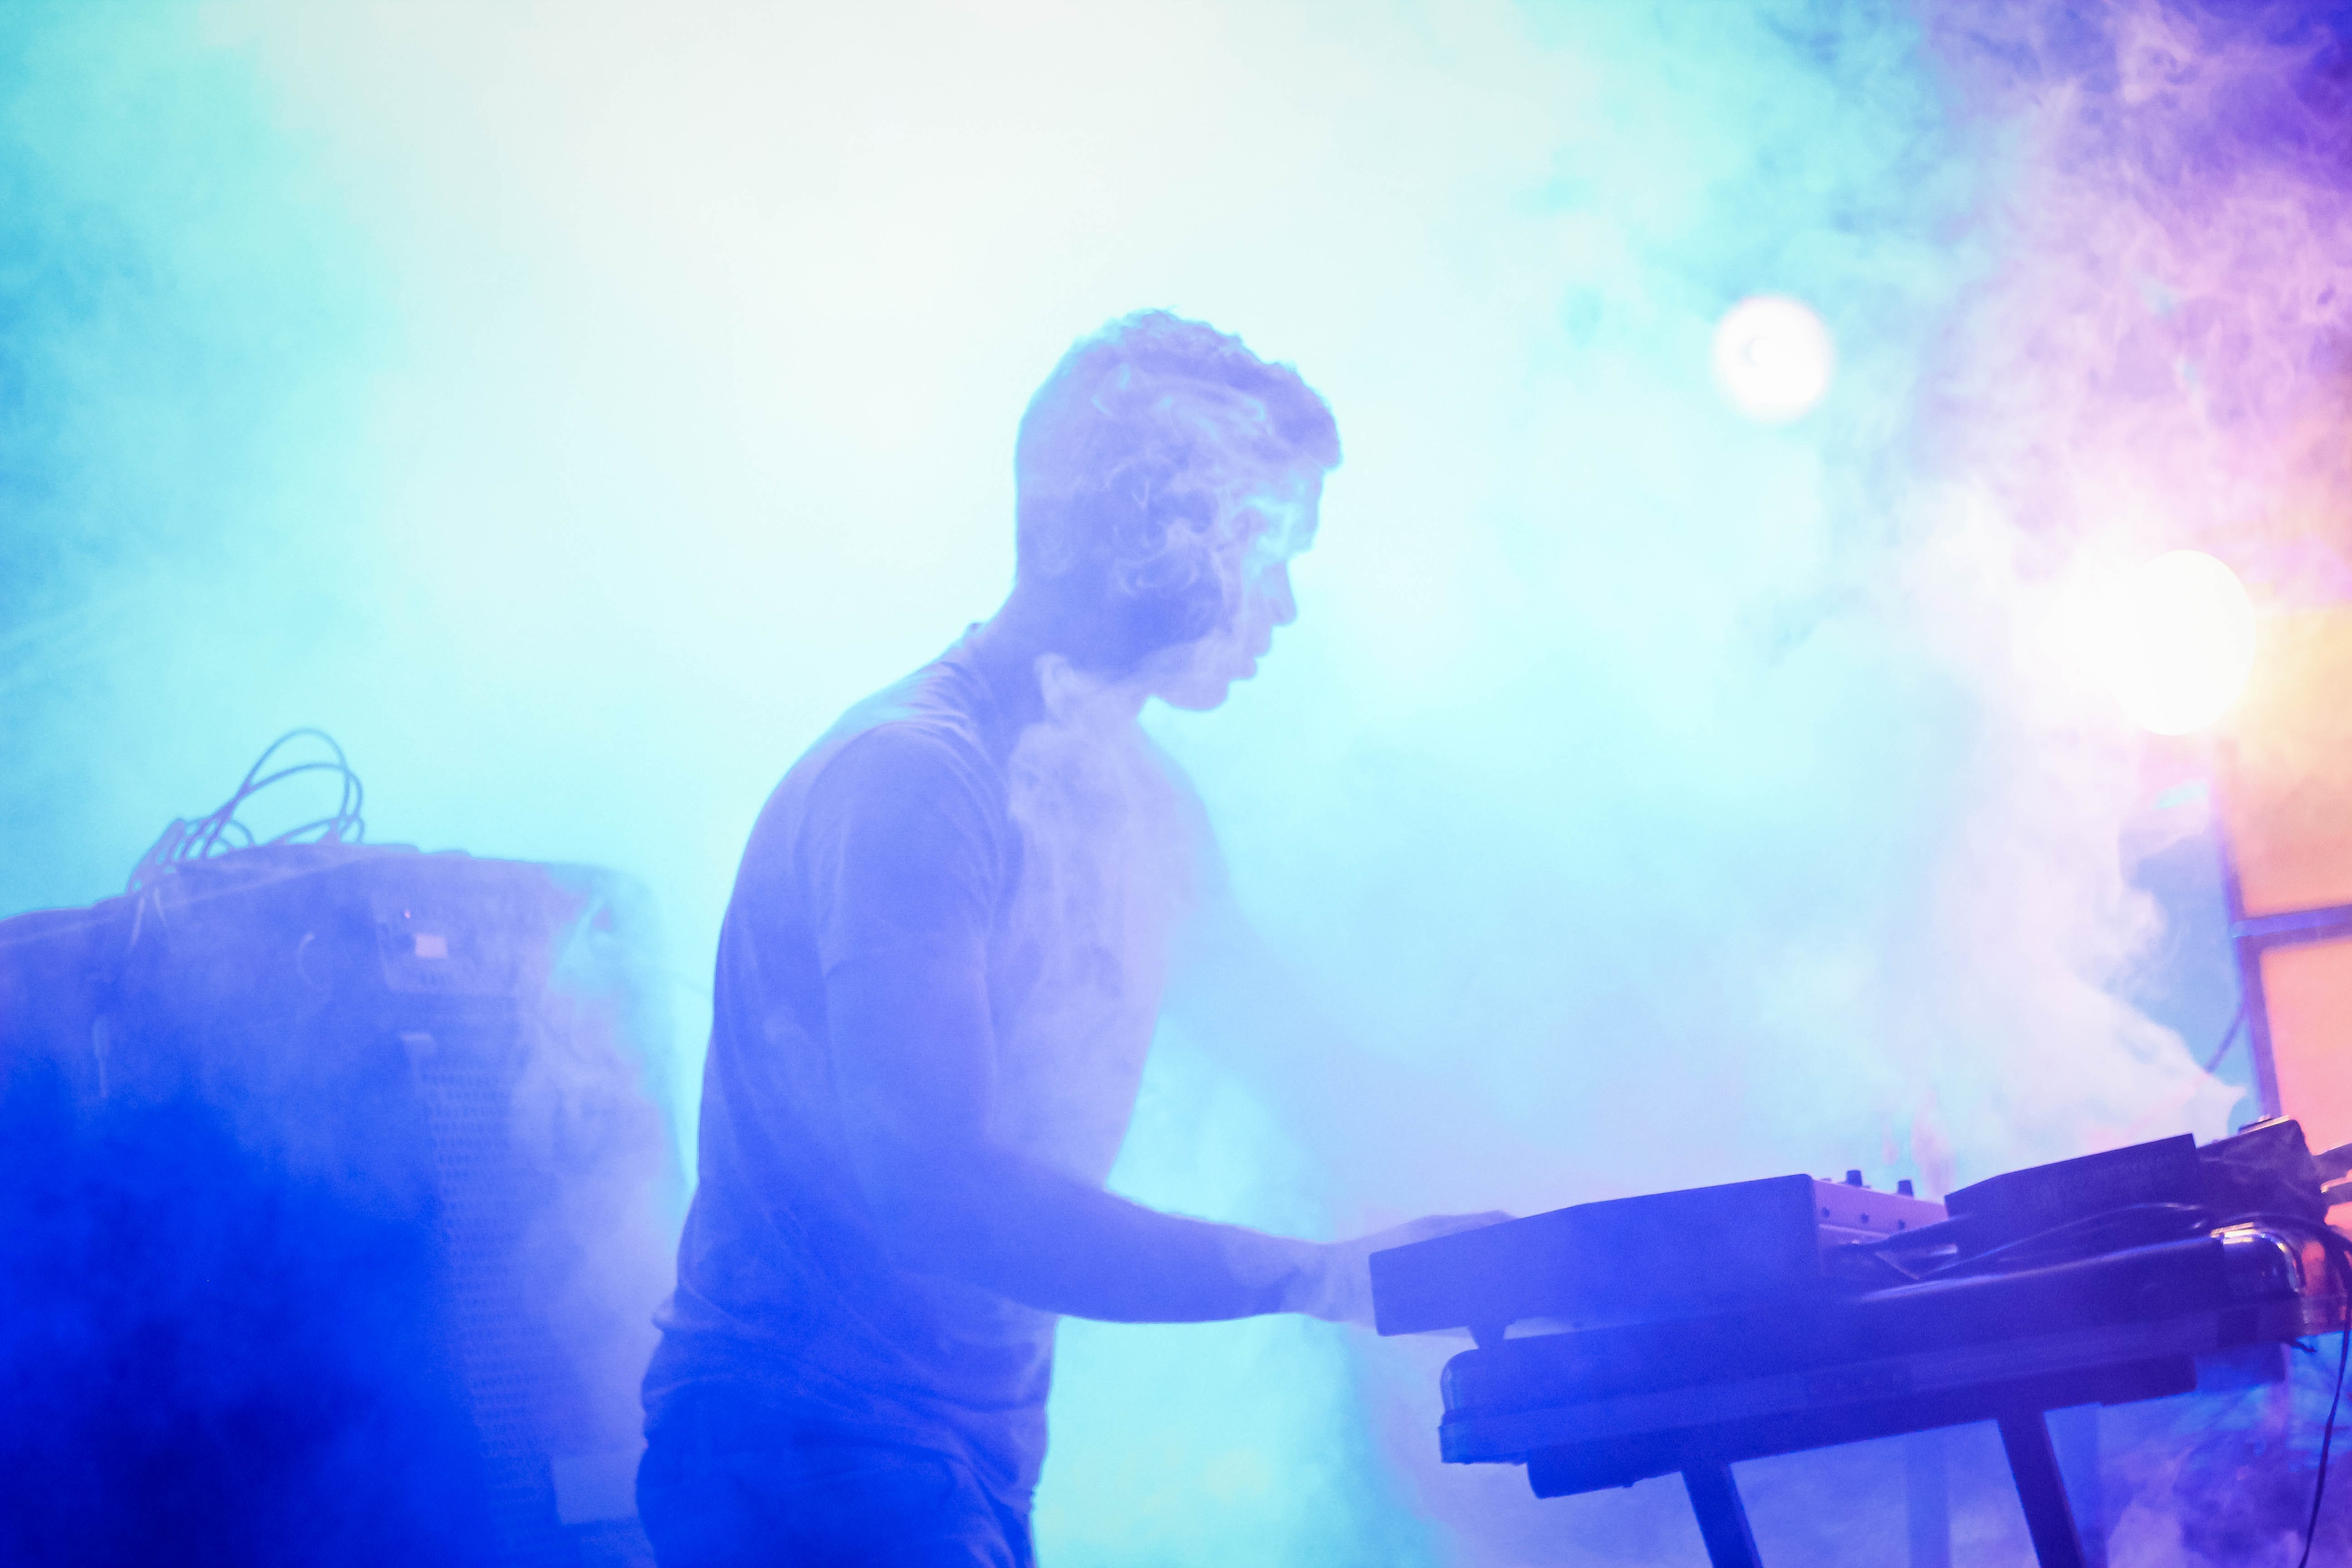 A man performing on a fog covered stage.